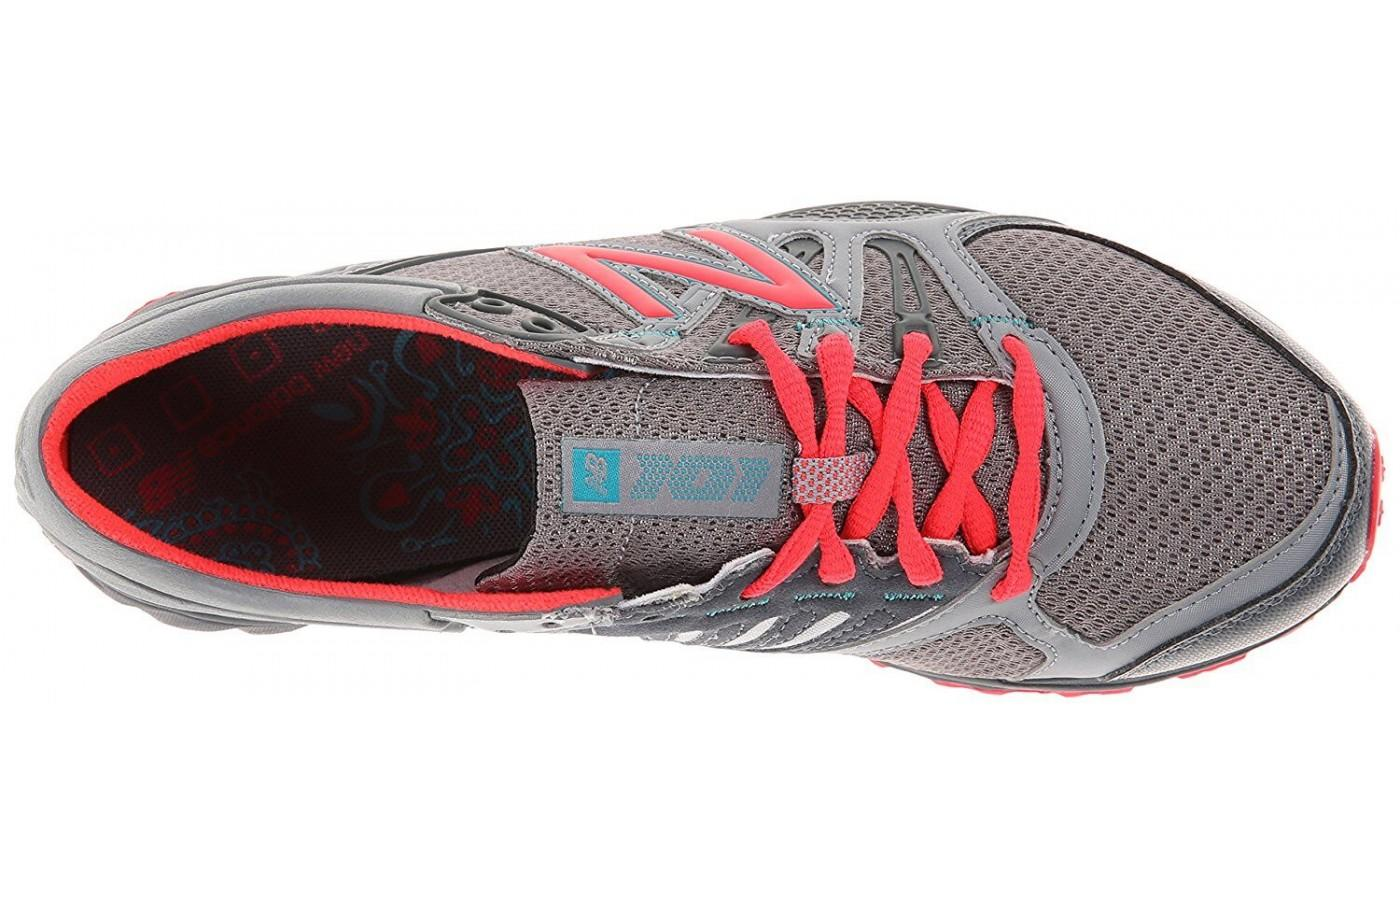 The mesh upper will keep the wearers feet cool and dry no matter how hot it is